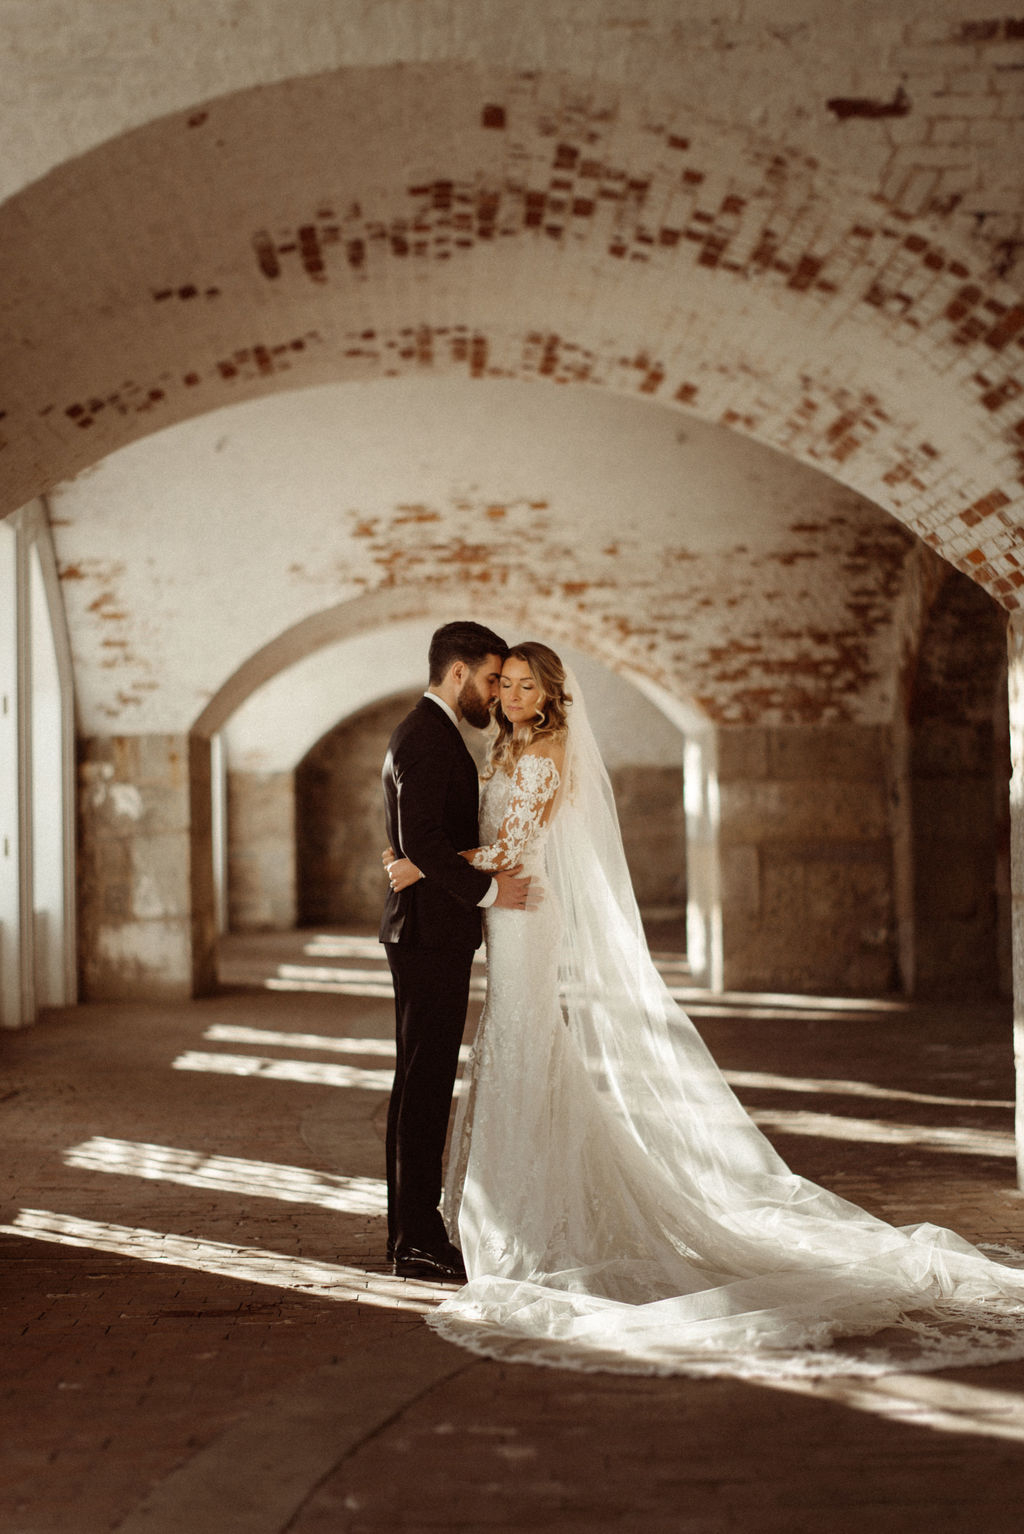 Candlelit Vineyard Wedding In Rhode Island 07